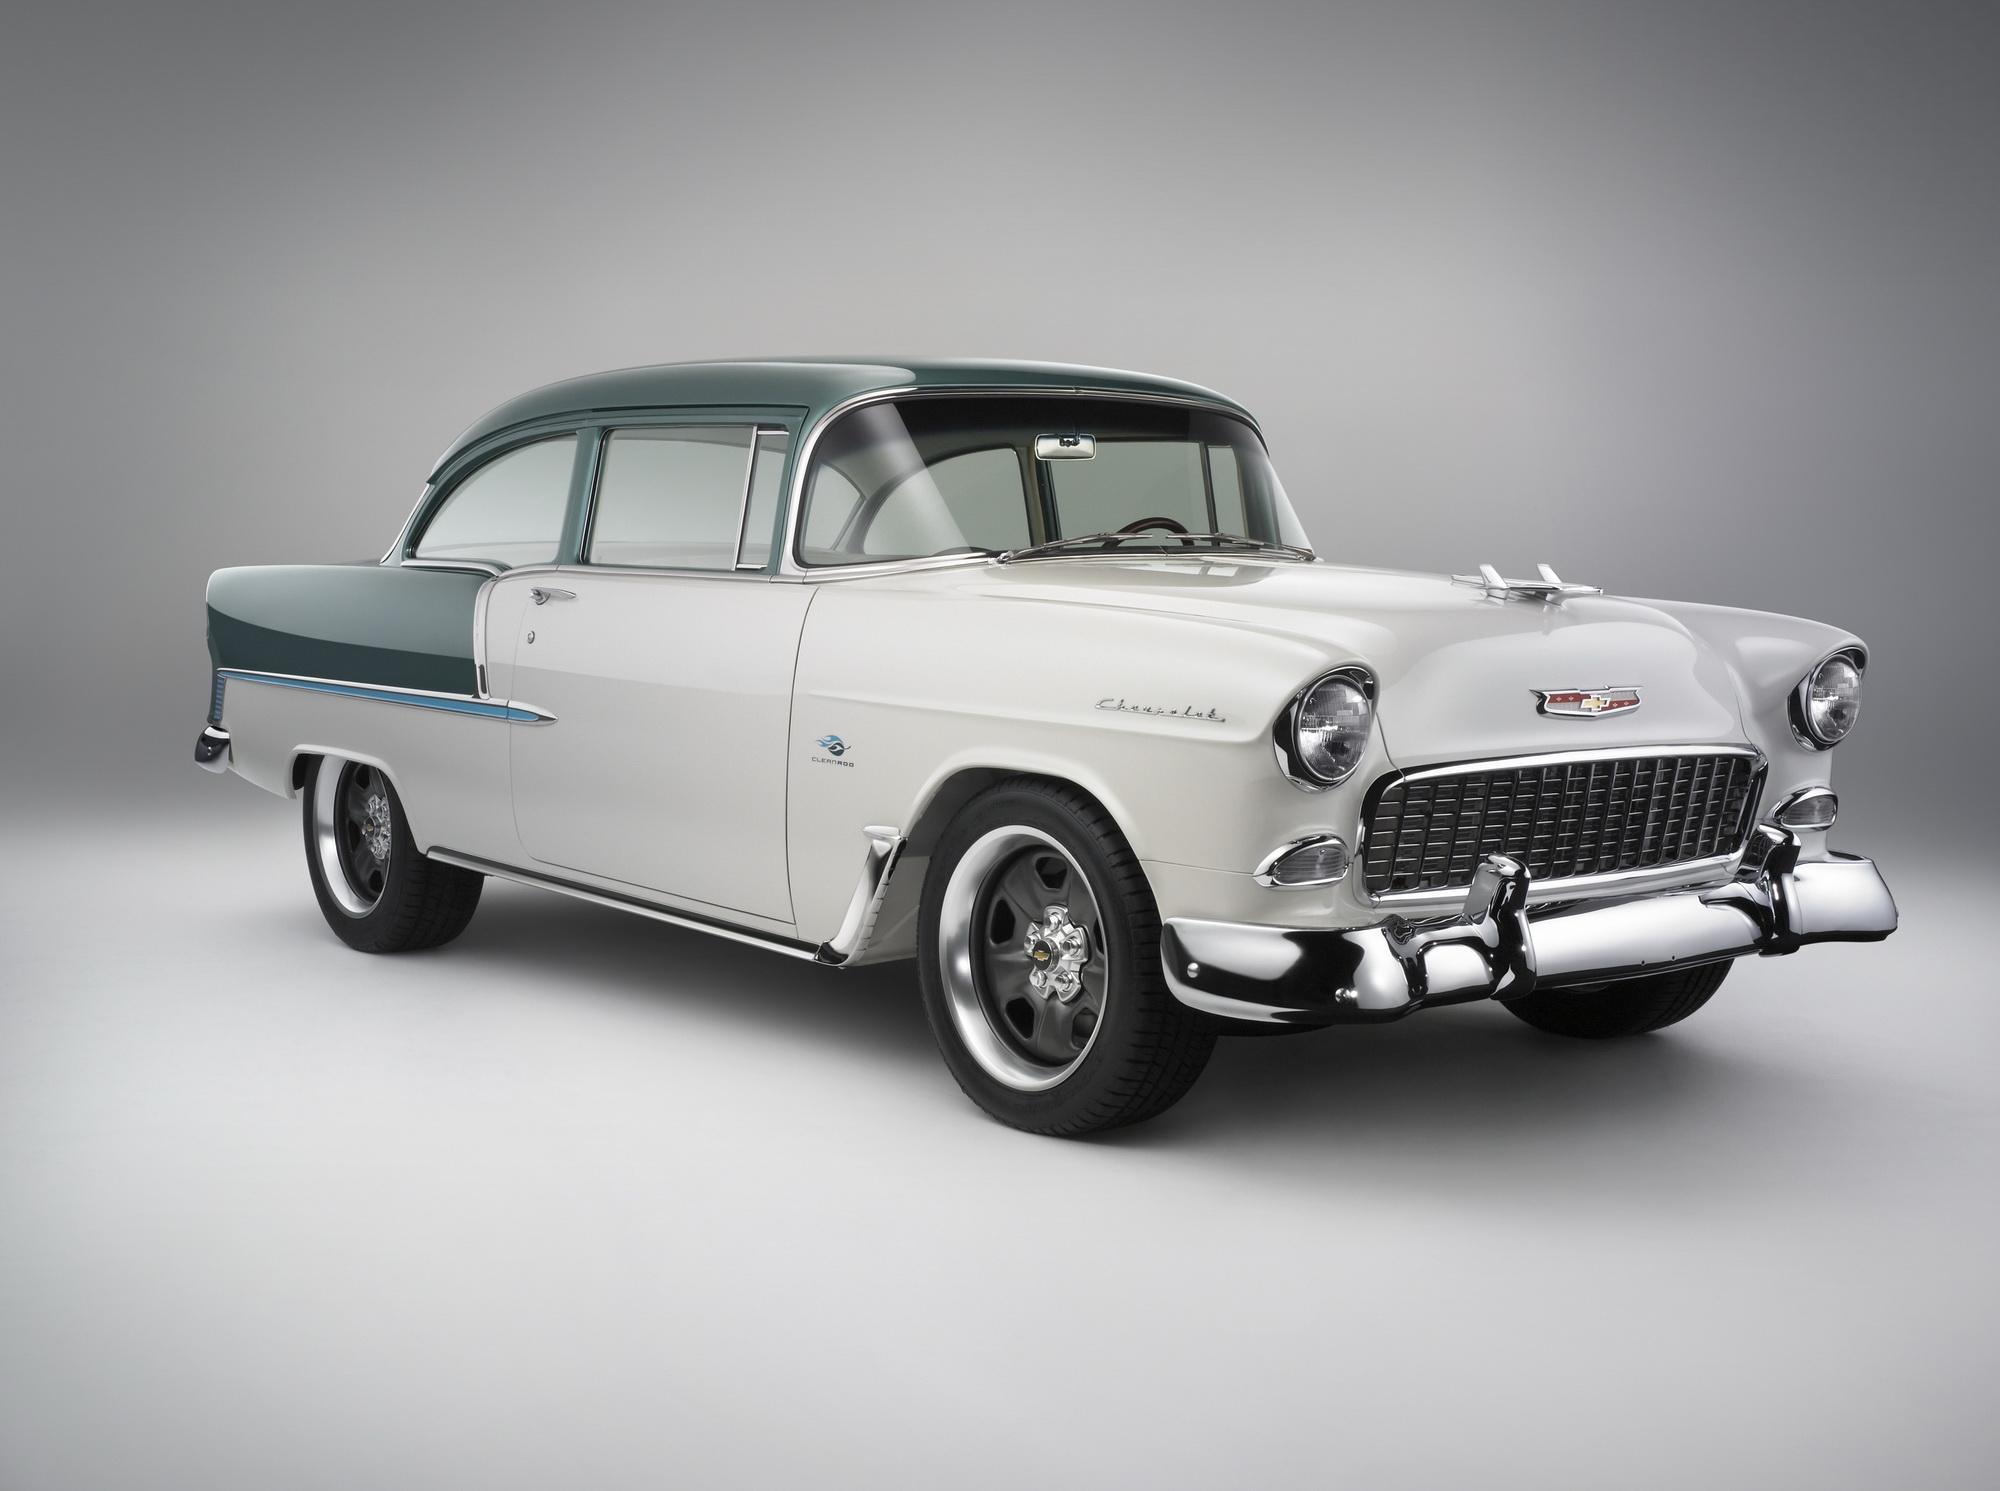 Chevrolet revealed at the sema show the e rod concept vehicle it is a fully restored 1955 chevy powered by a 6 2 liter ls3 v8 e rod engine that delivers